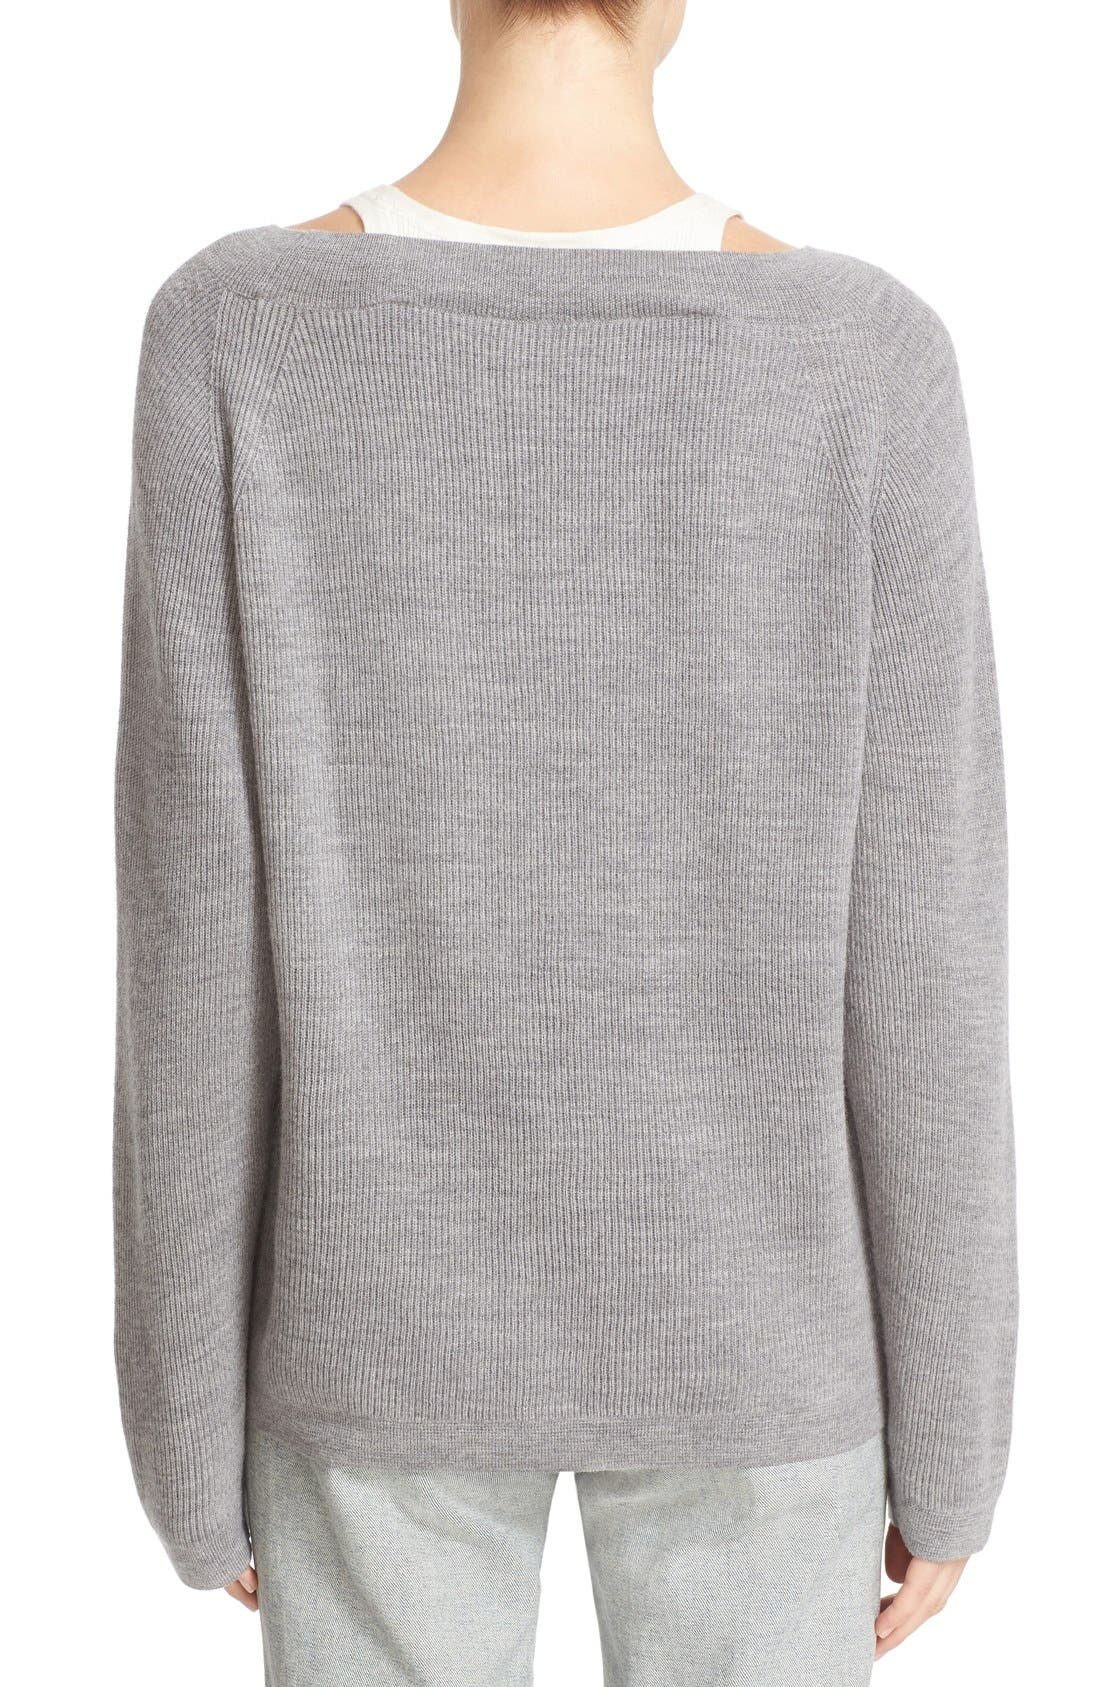 Alternate Image 2  - T by Alexander Wang Layered Merino Wool Pullover